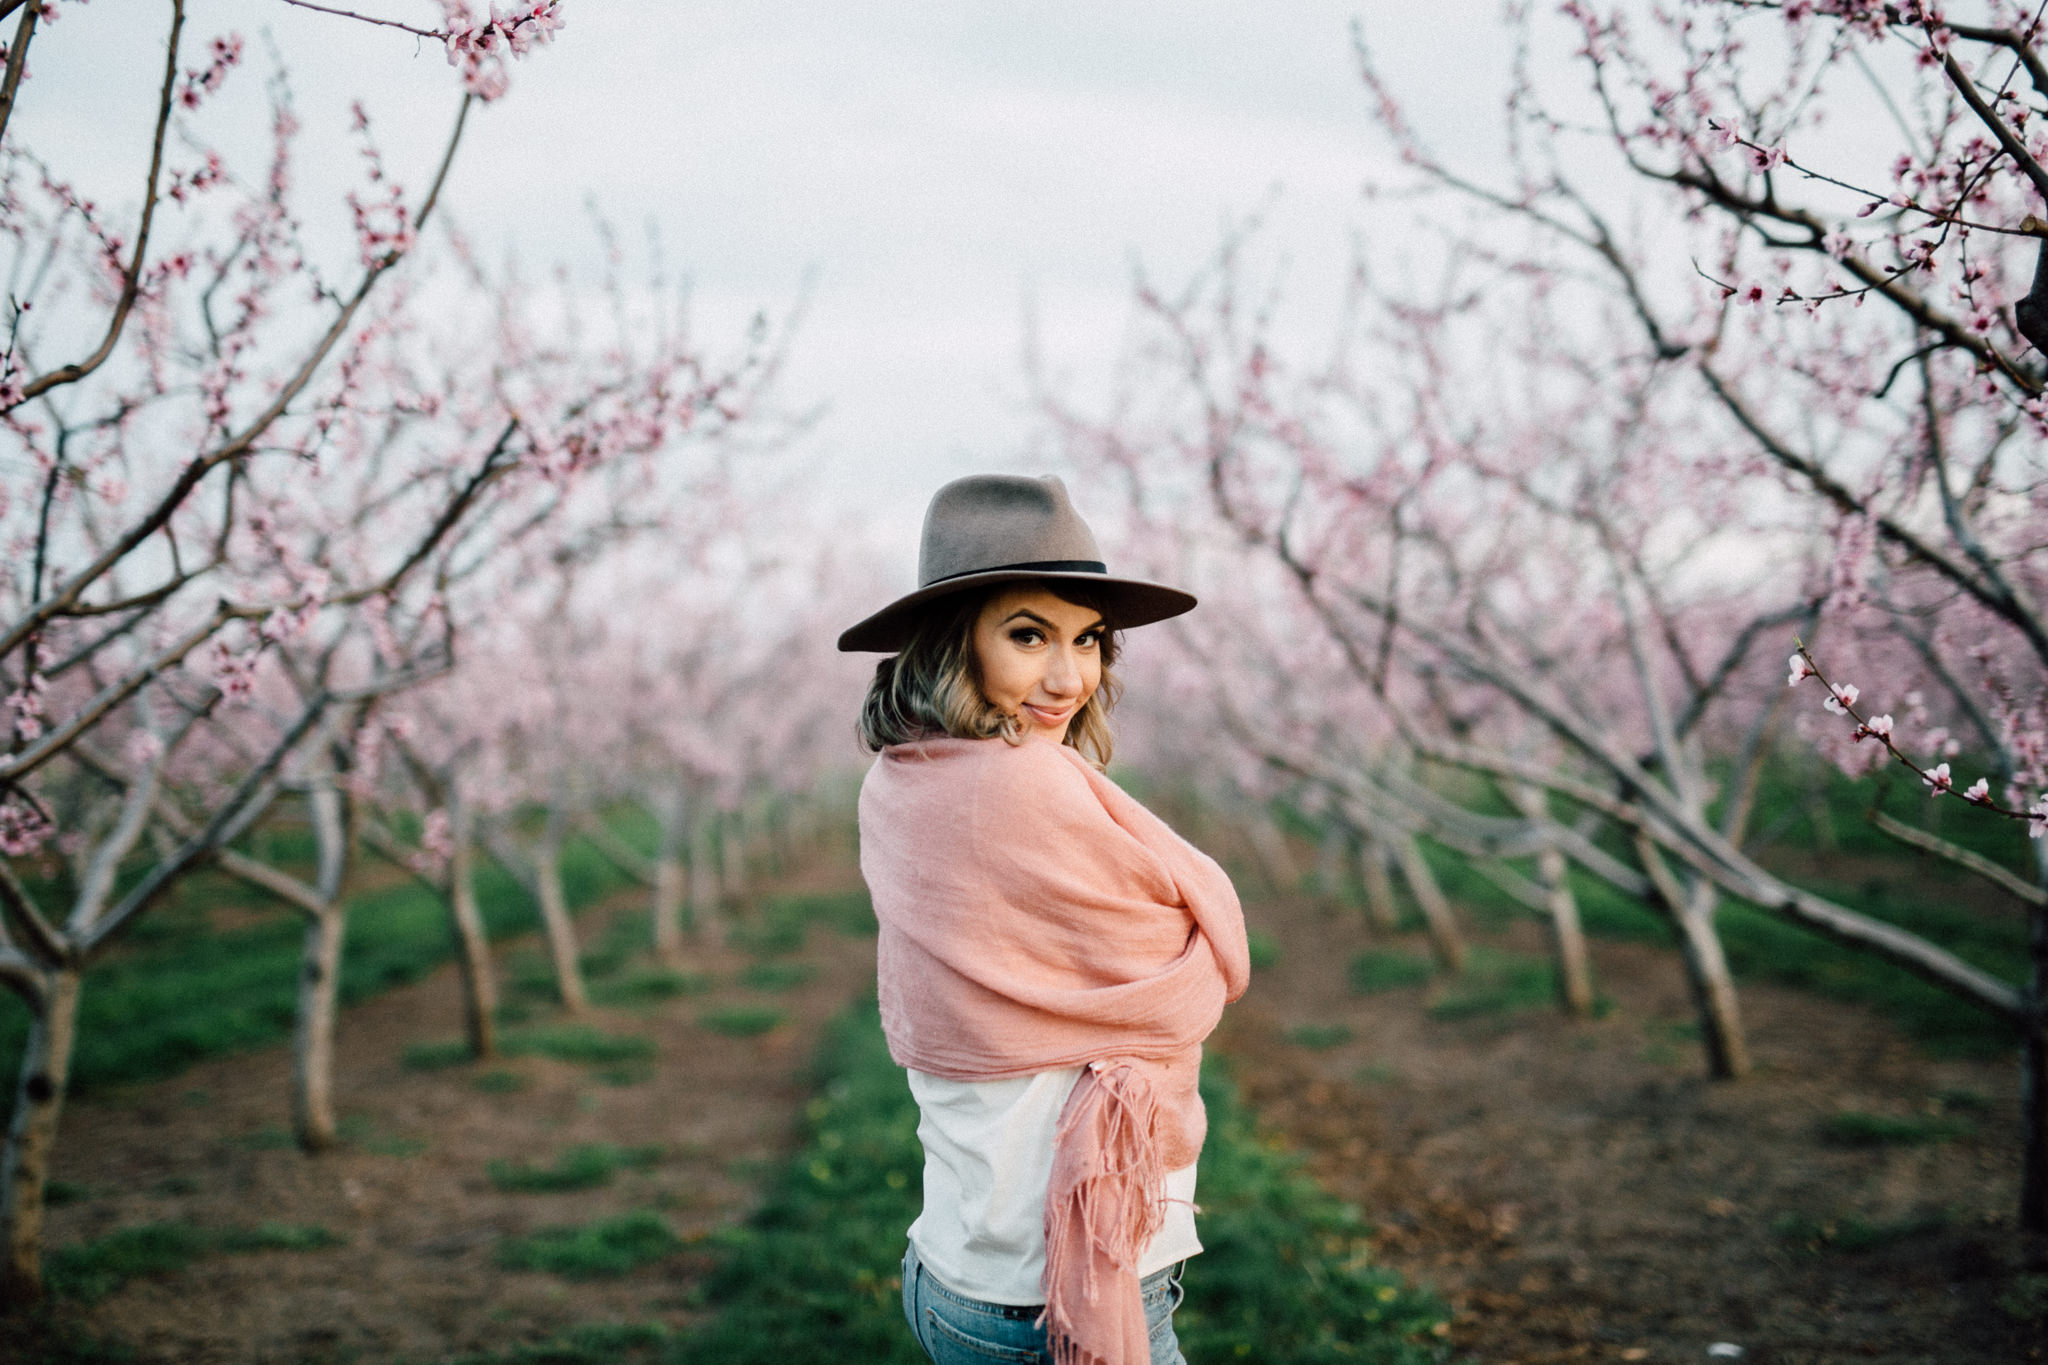 Niagara-Portrait-Session-Niagara-On-The-Lake-Cherry-Blossoms-photography-by-Simply-Lace-Photography-064.JPG